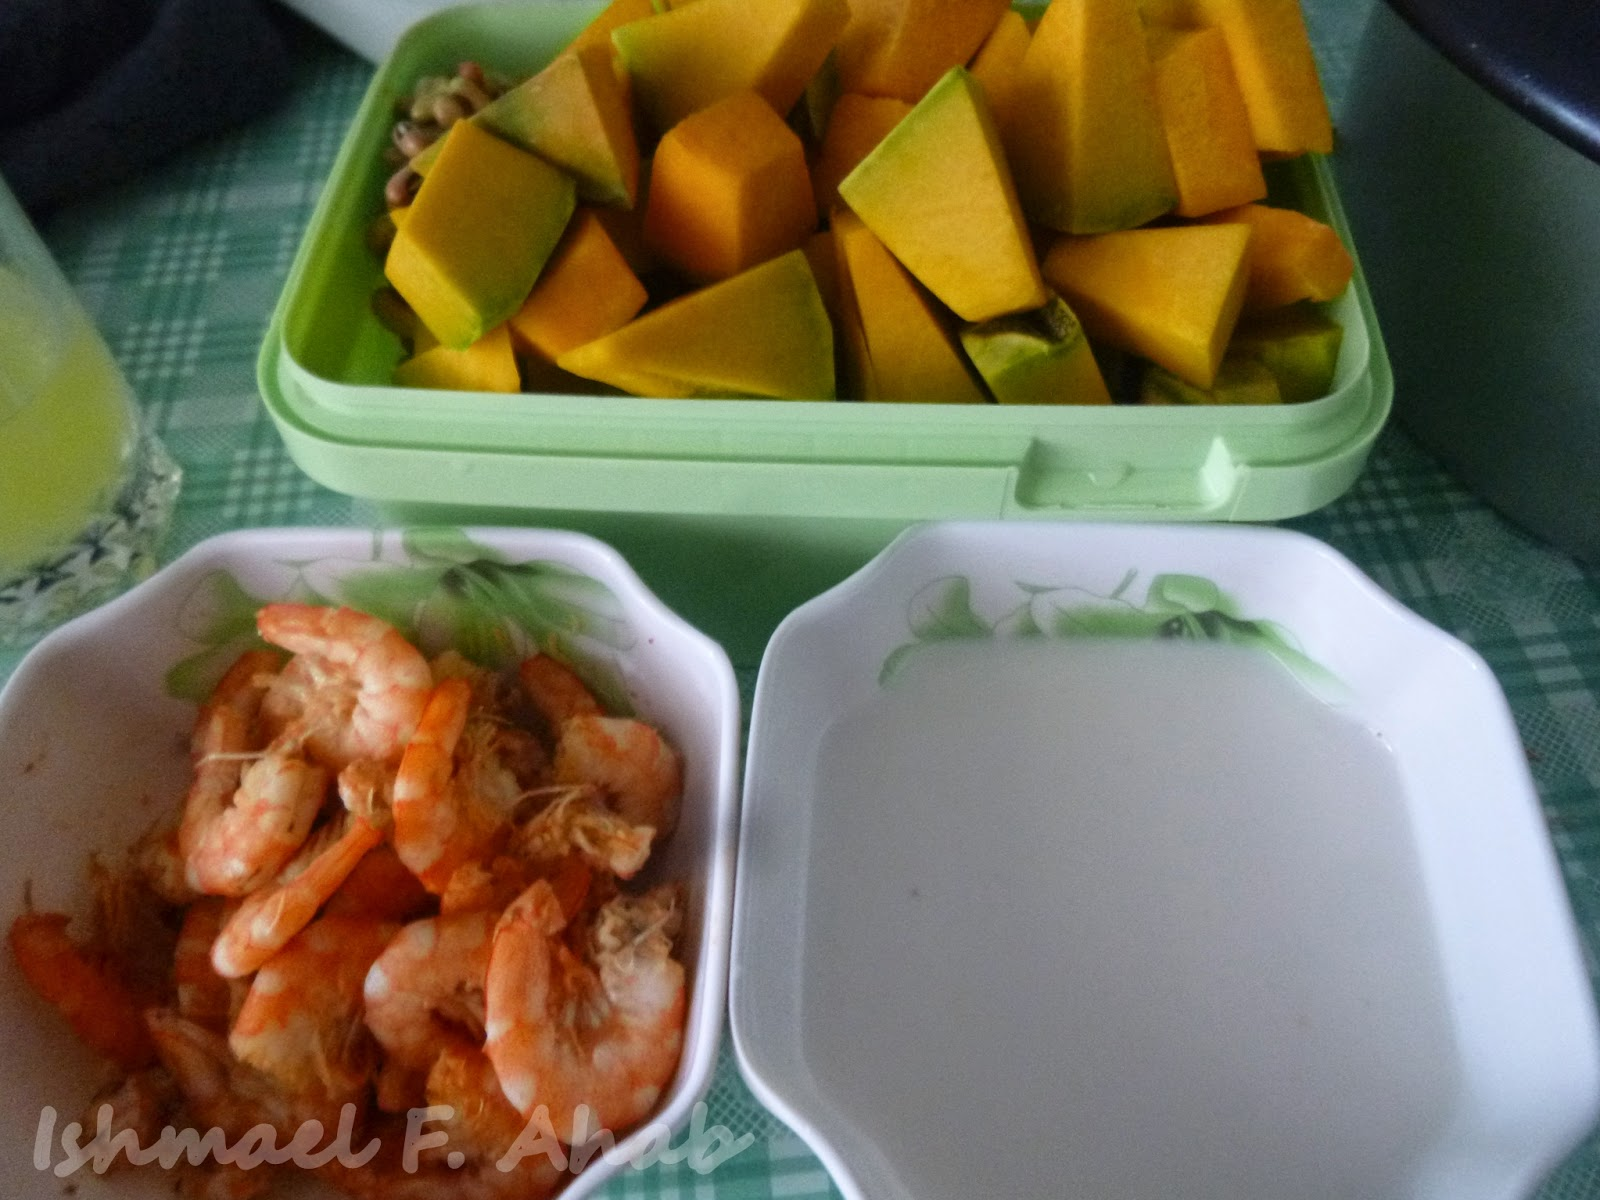 kalabasa; sliced the sitaw, onions and bell pepper; and cut pieces of